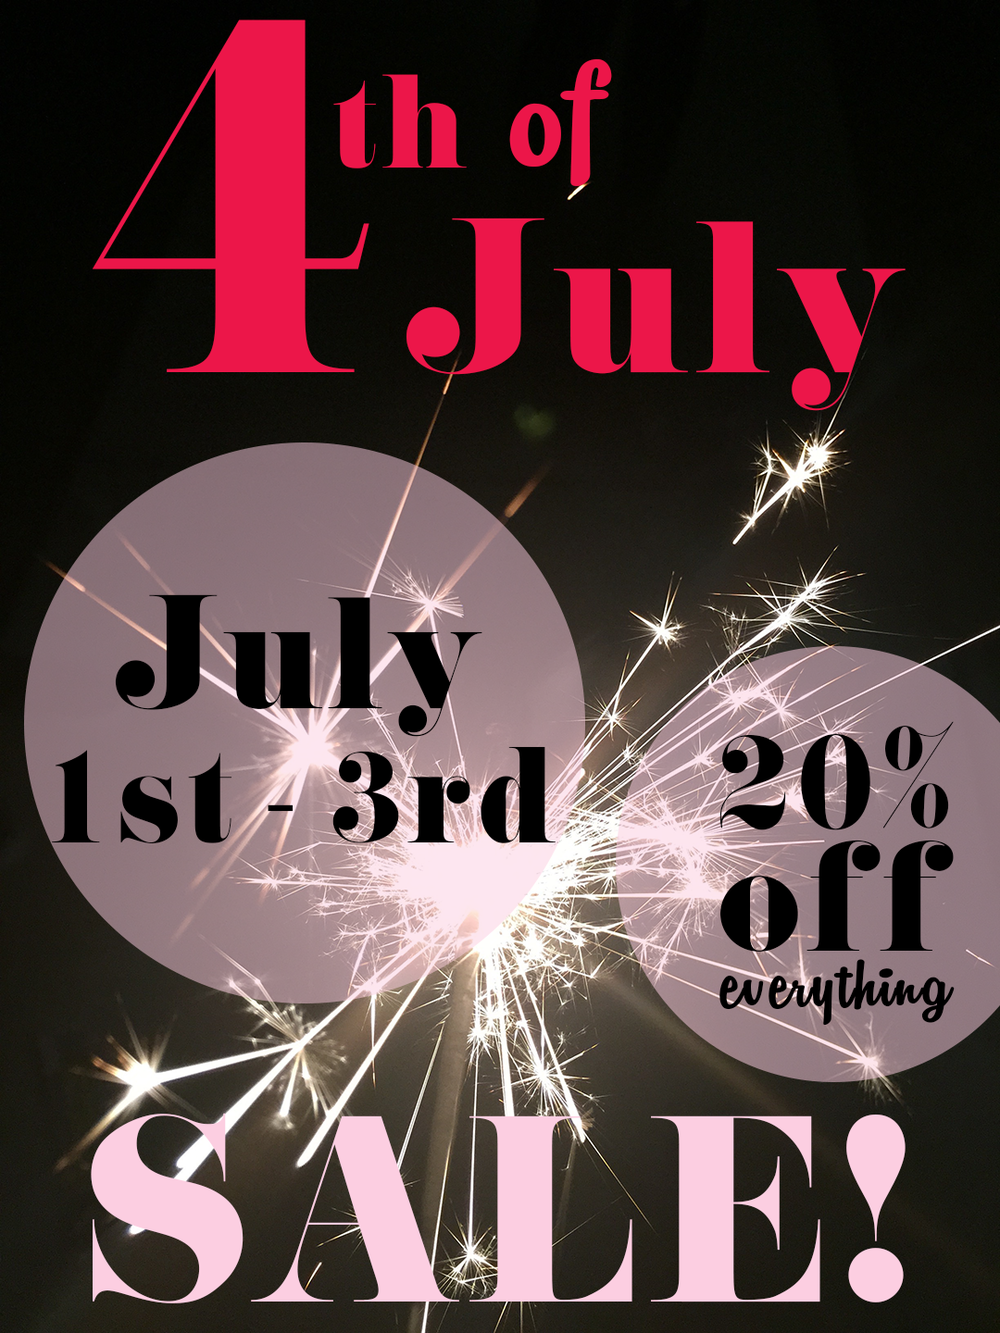 Coupon Code: HAPPY4TH